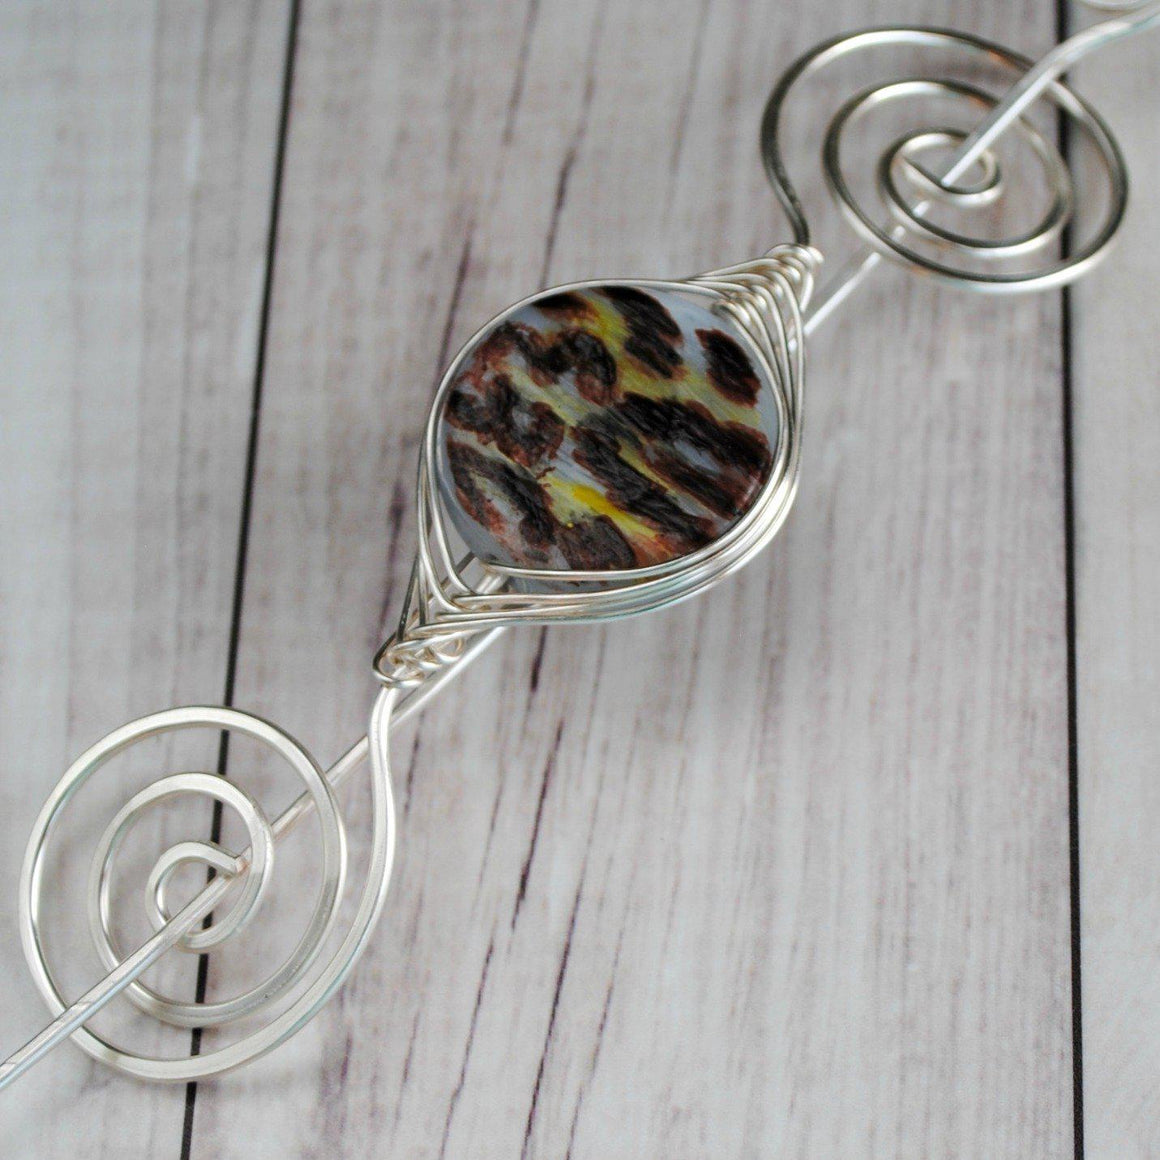 Shawl Pin, Leopard Print Glass Shawl Pin - Large Silver - Crafty Flutterby Creations